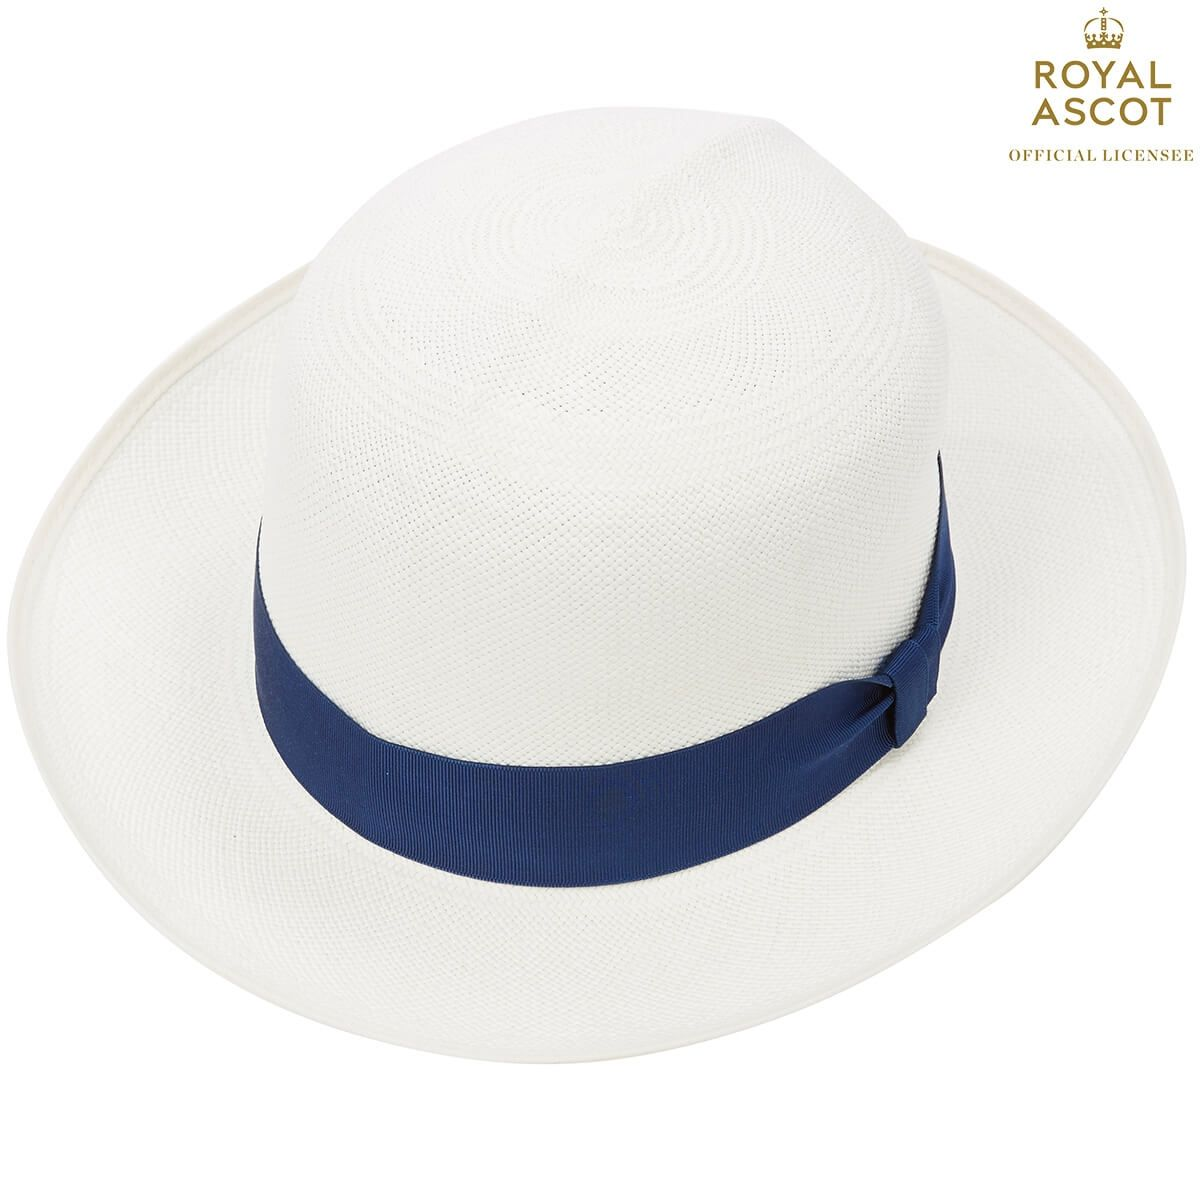 Thomas Superfine Folder Panama Hat With Navy Band - White Bleached in size 57